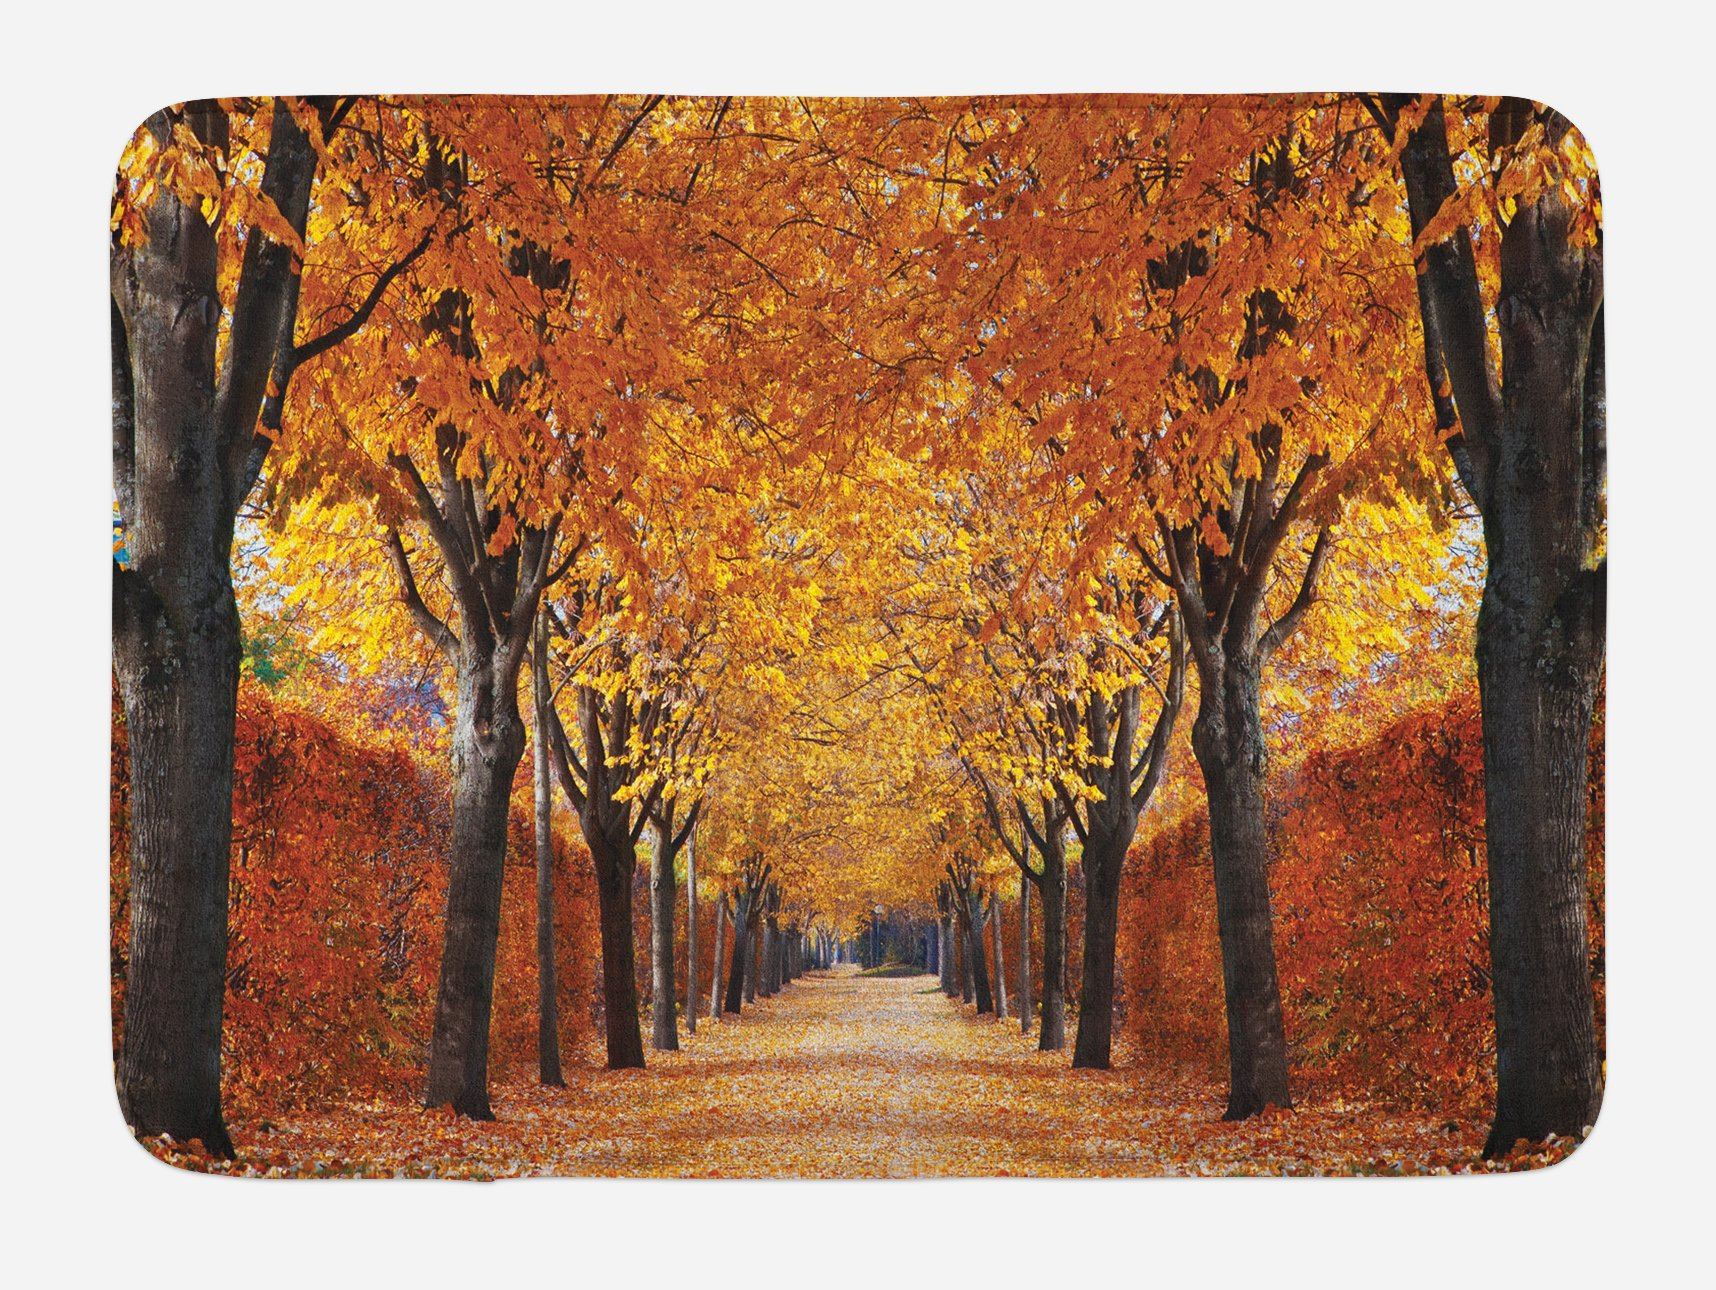 Ambesonne Autumn Bath Mat, Pathway in The Woods Covered with Dried Deciduous Tree Leaves Romantic Fall Season, Plush Bathroom Decor Mat with Non Slip Backing, 29.5 W X 17.5 W Inches, Orange Brown